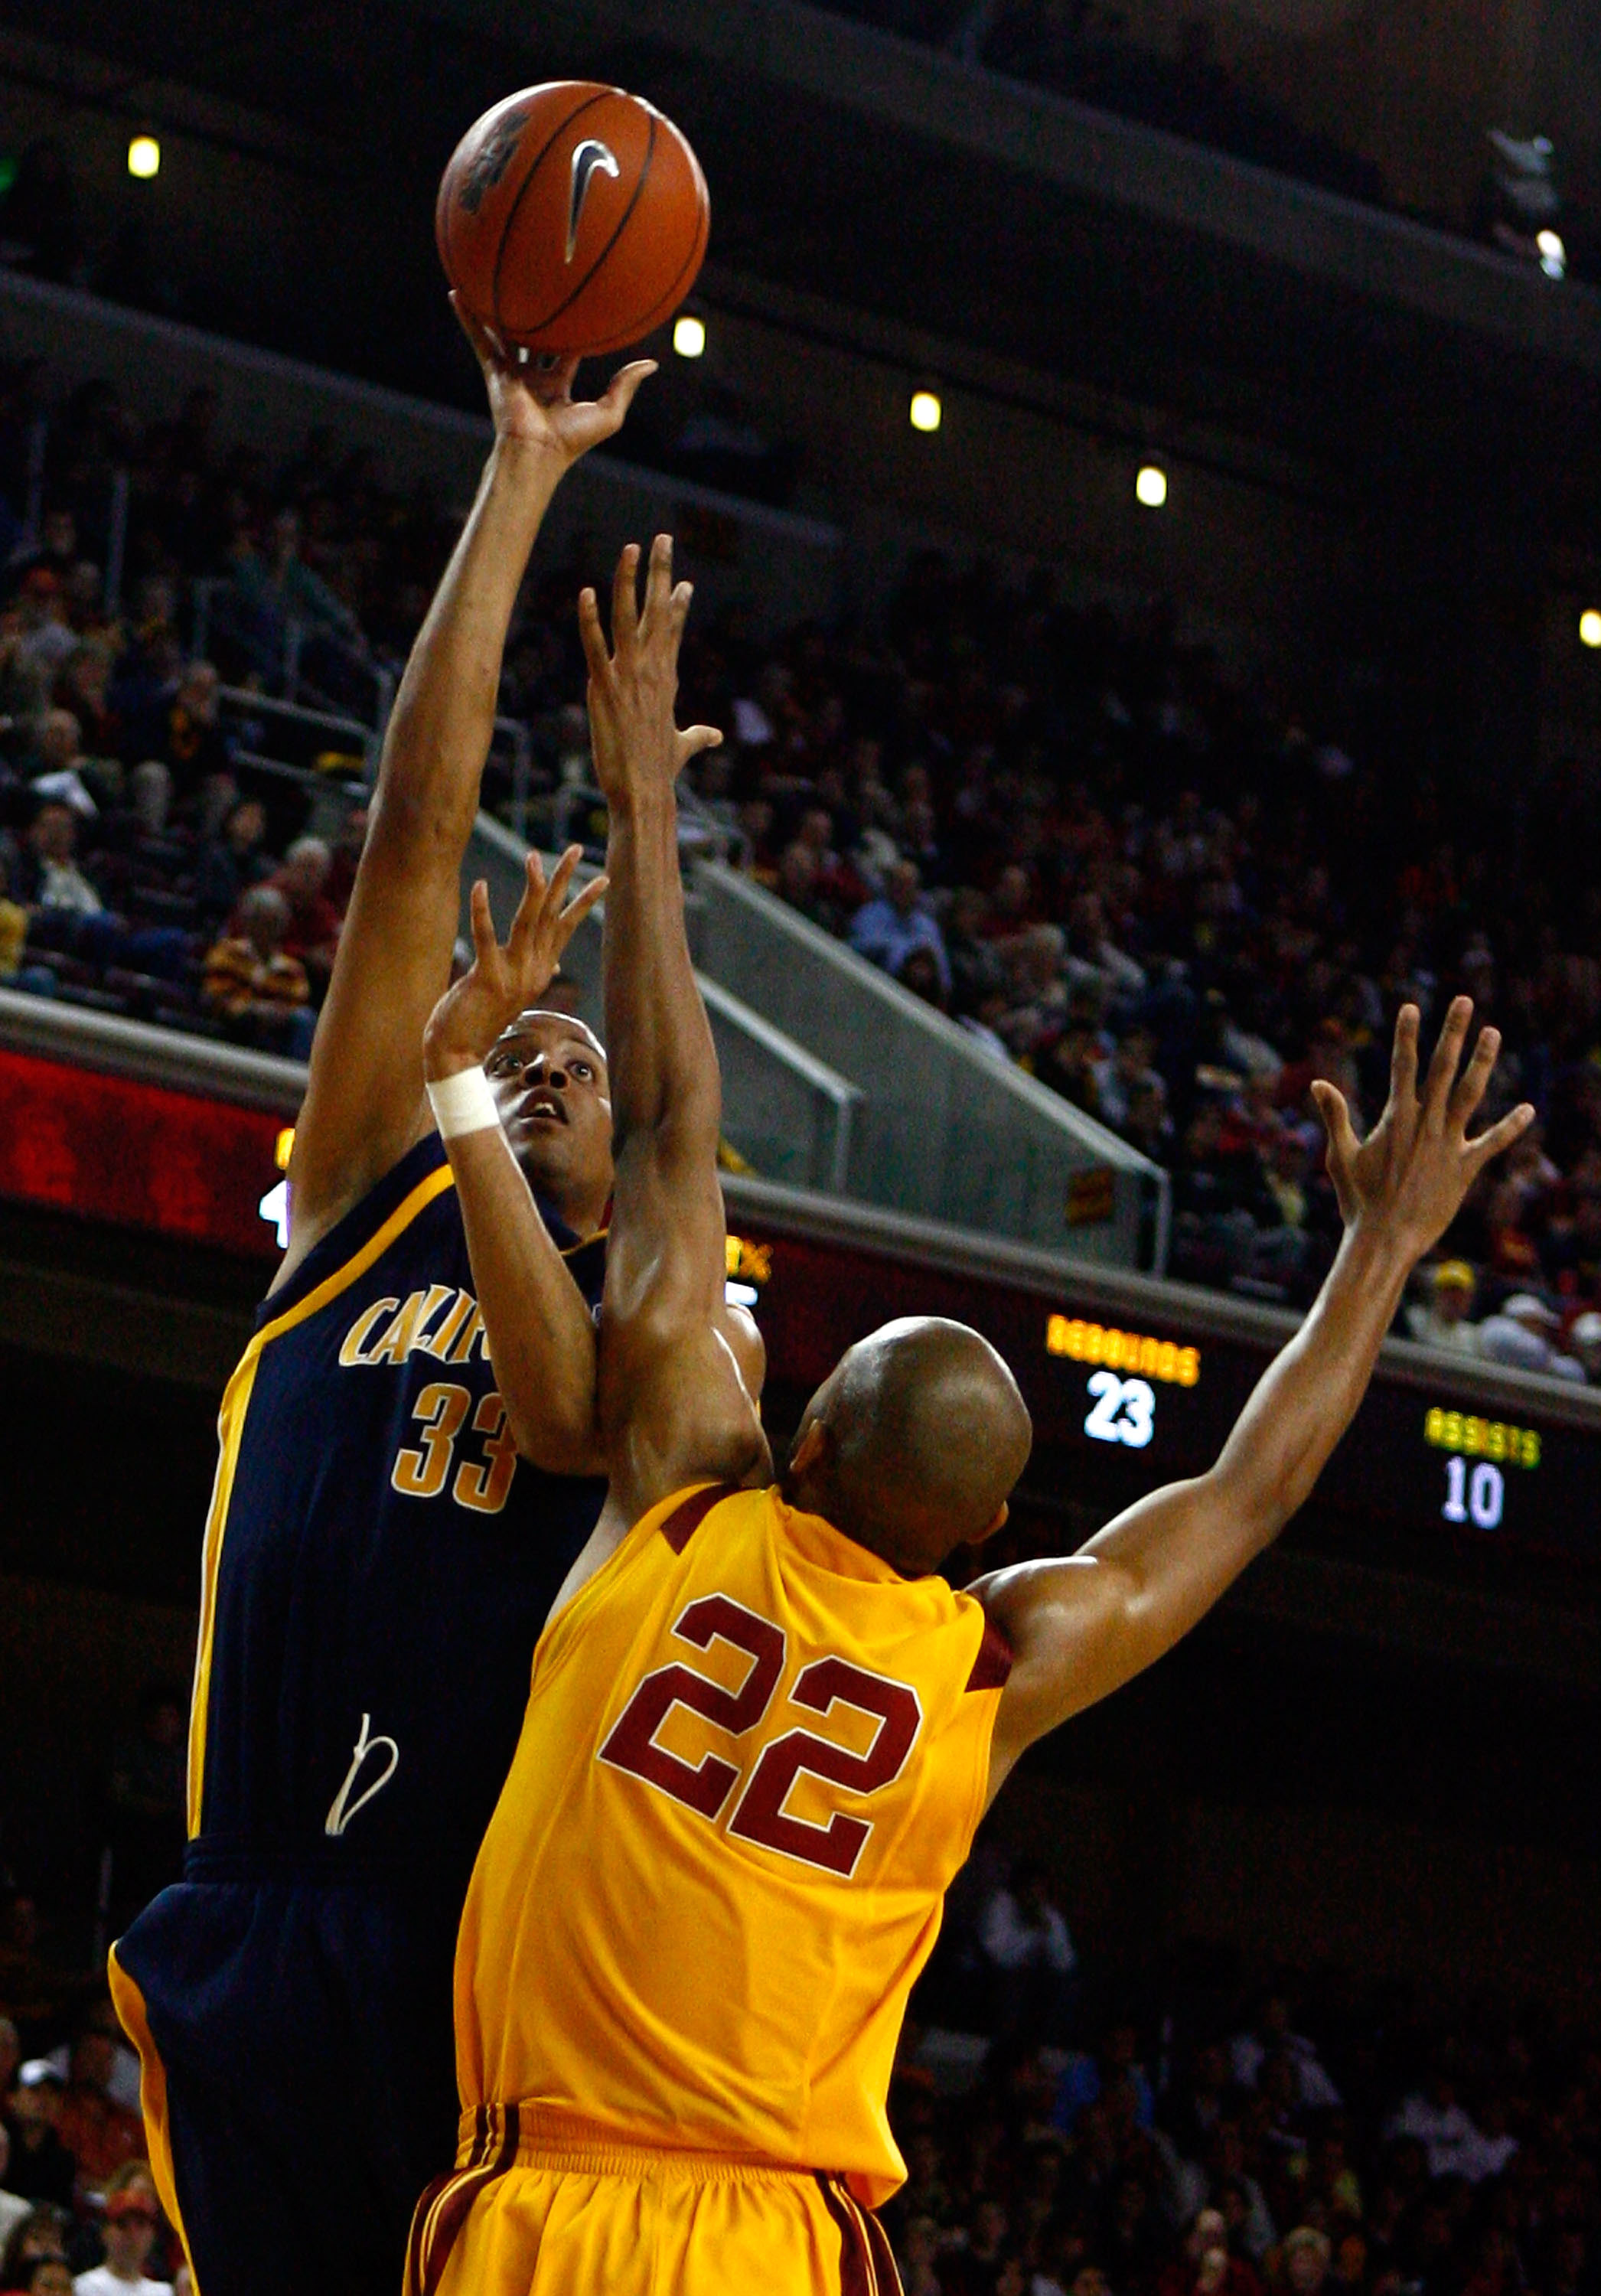 LOS ANGELES, CA - JANUARY 31:  Jordan Wilkes #33 of the Cal Golden Bears shoots over Taj Gibson #22 of the USC Trojans during the second half at the Galen Center on January 31, 2009 in Los Angeles, California. USC defeated Cal 73-62.  (Photo by Jeff Gross